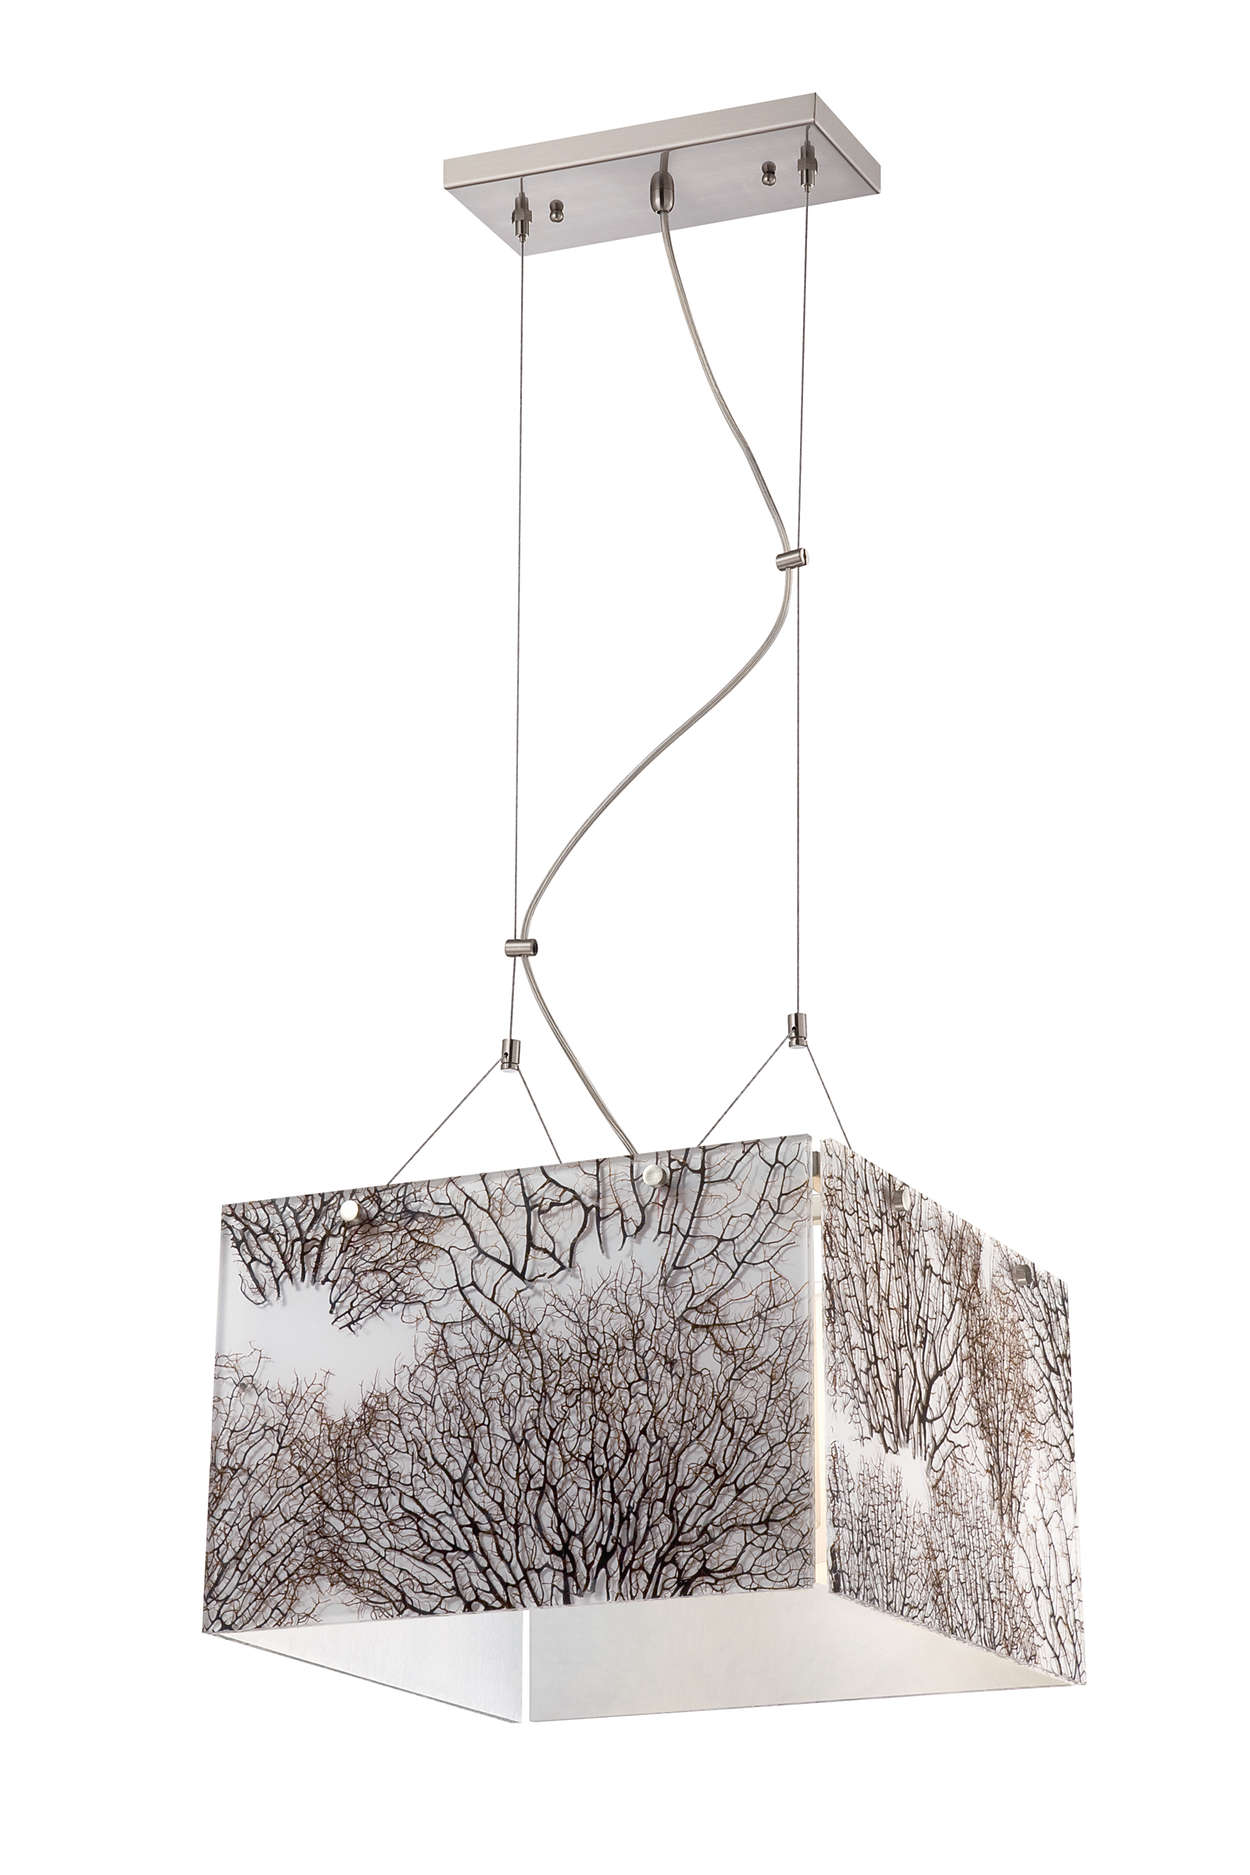 Ecoframe 4-light pendant in Satin Nickel finish